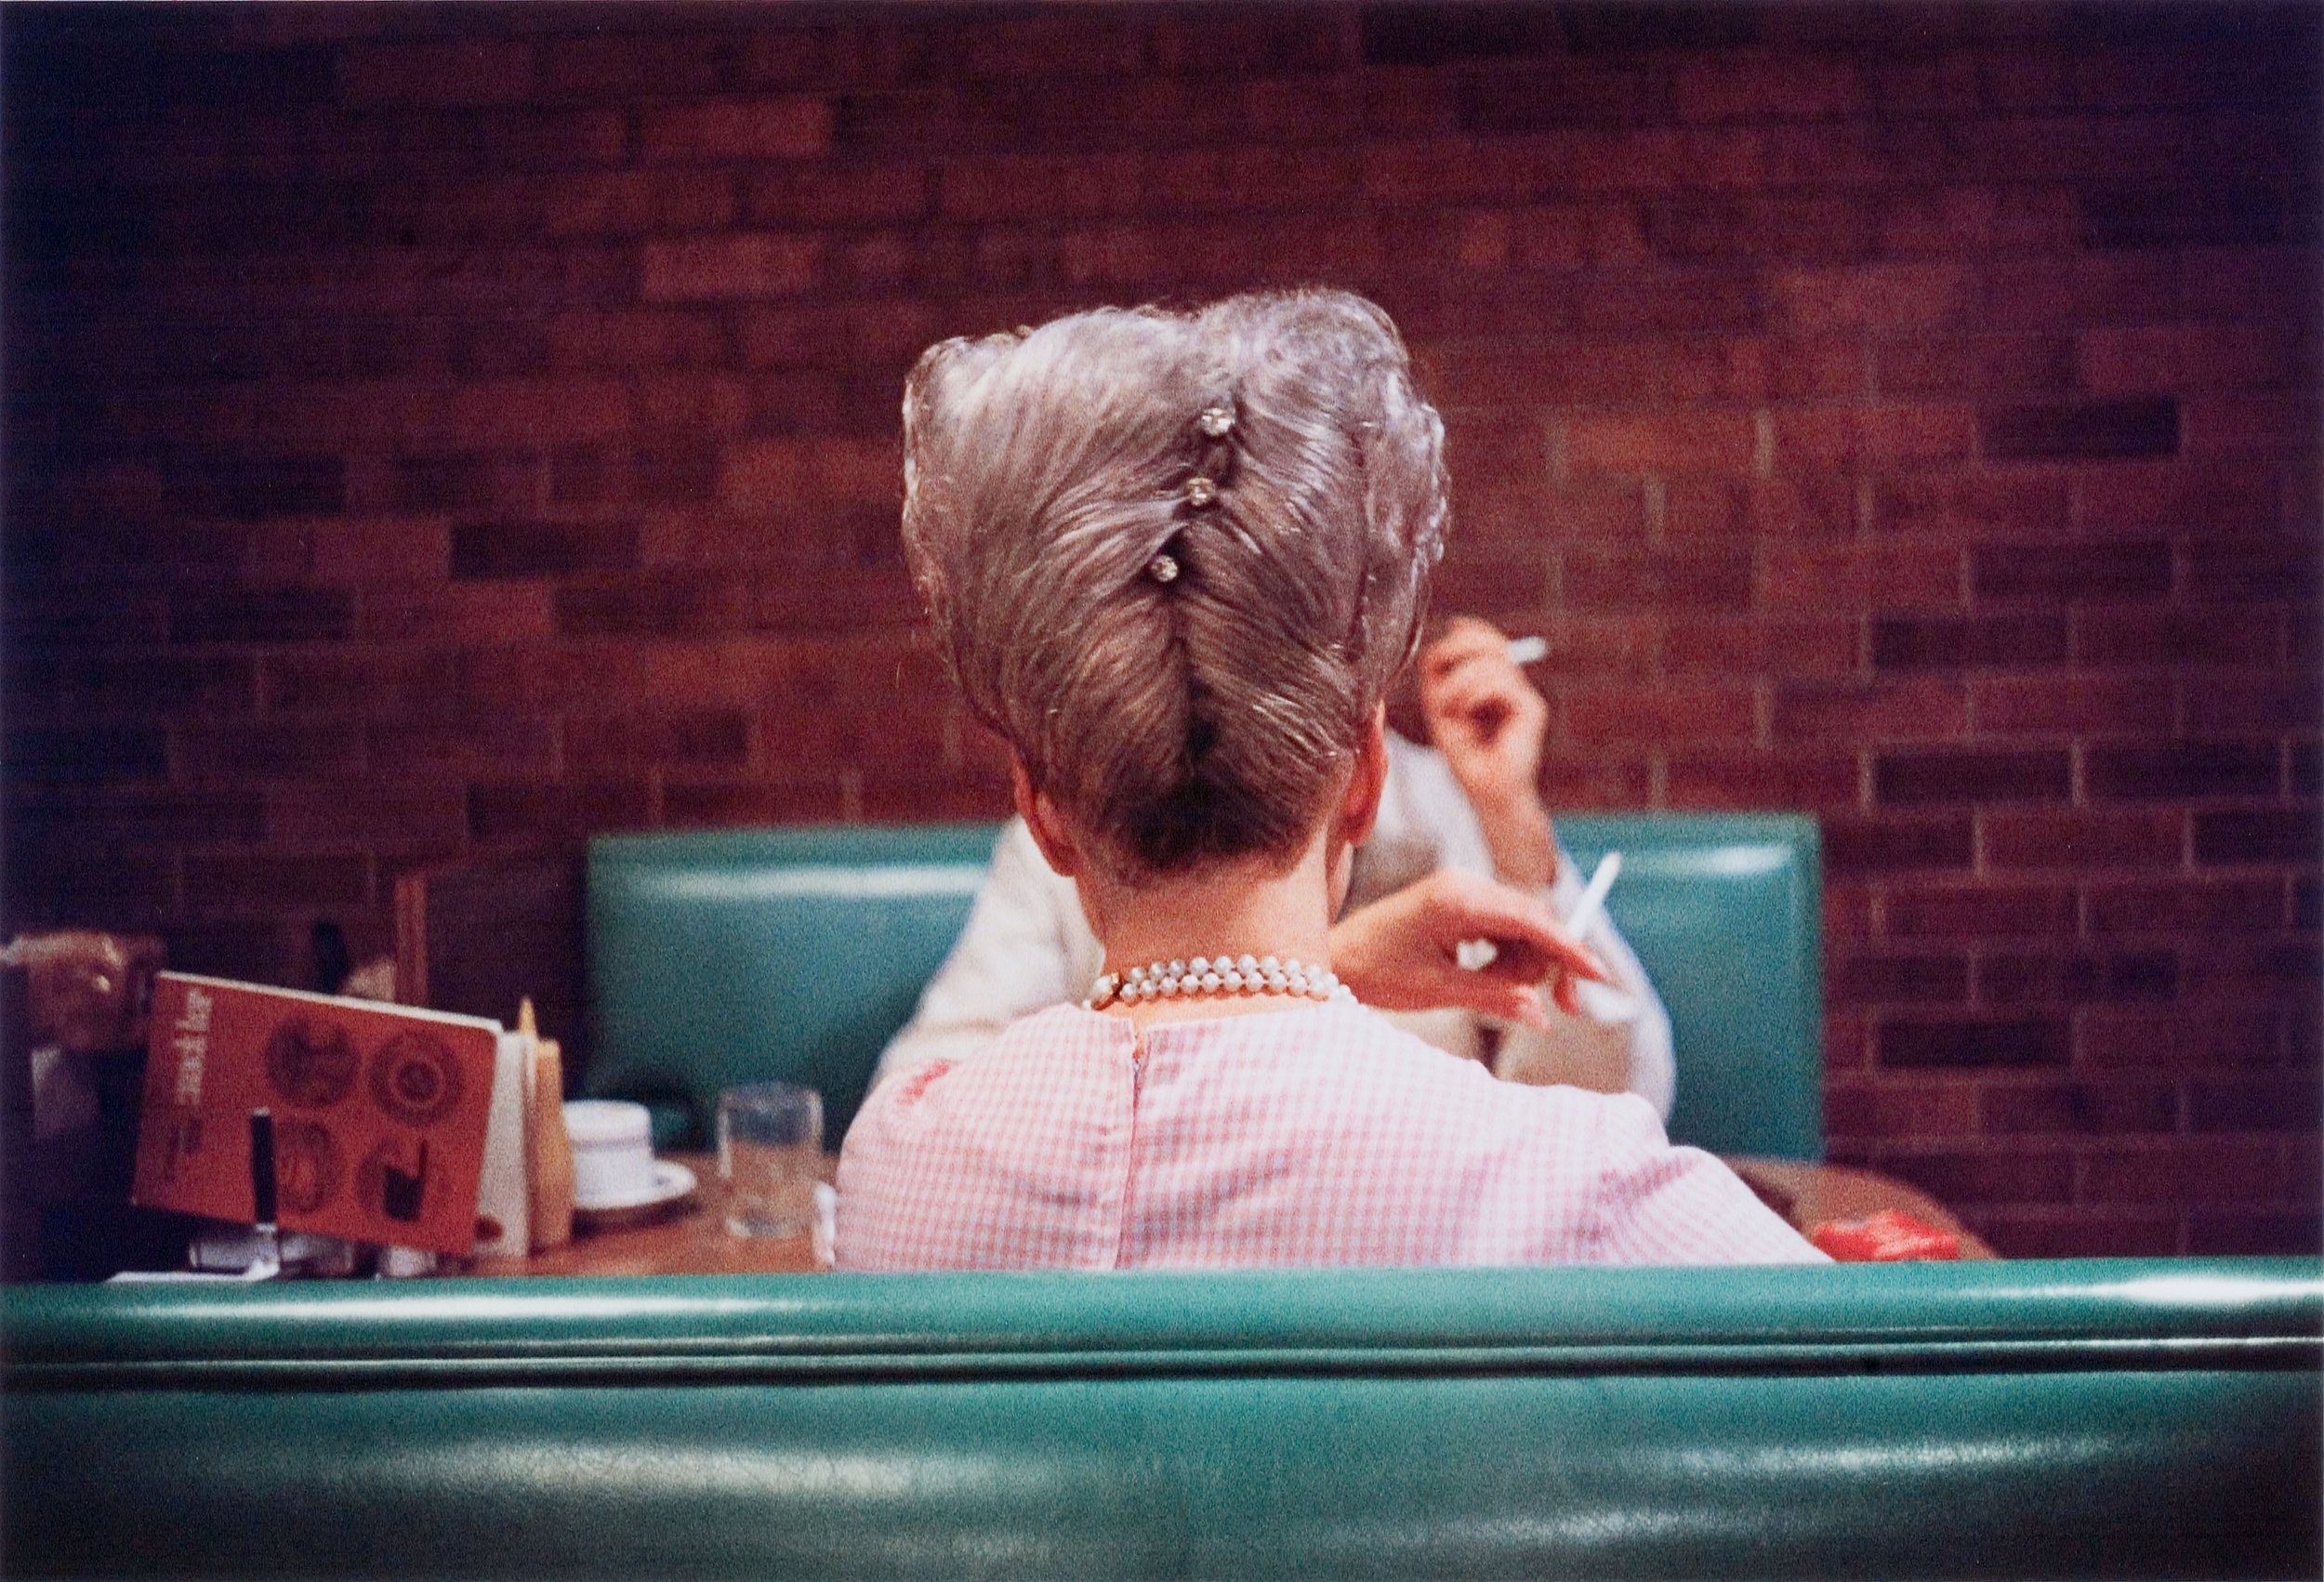 Untitled, William Eggleston